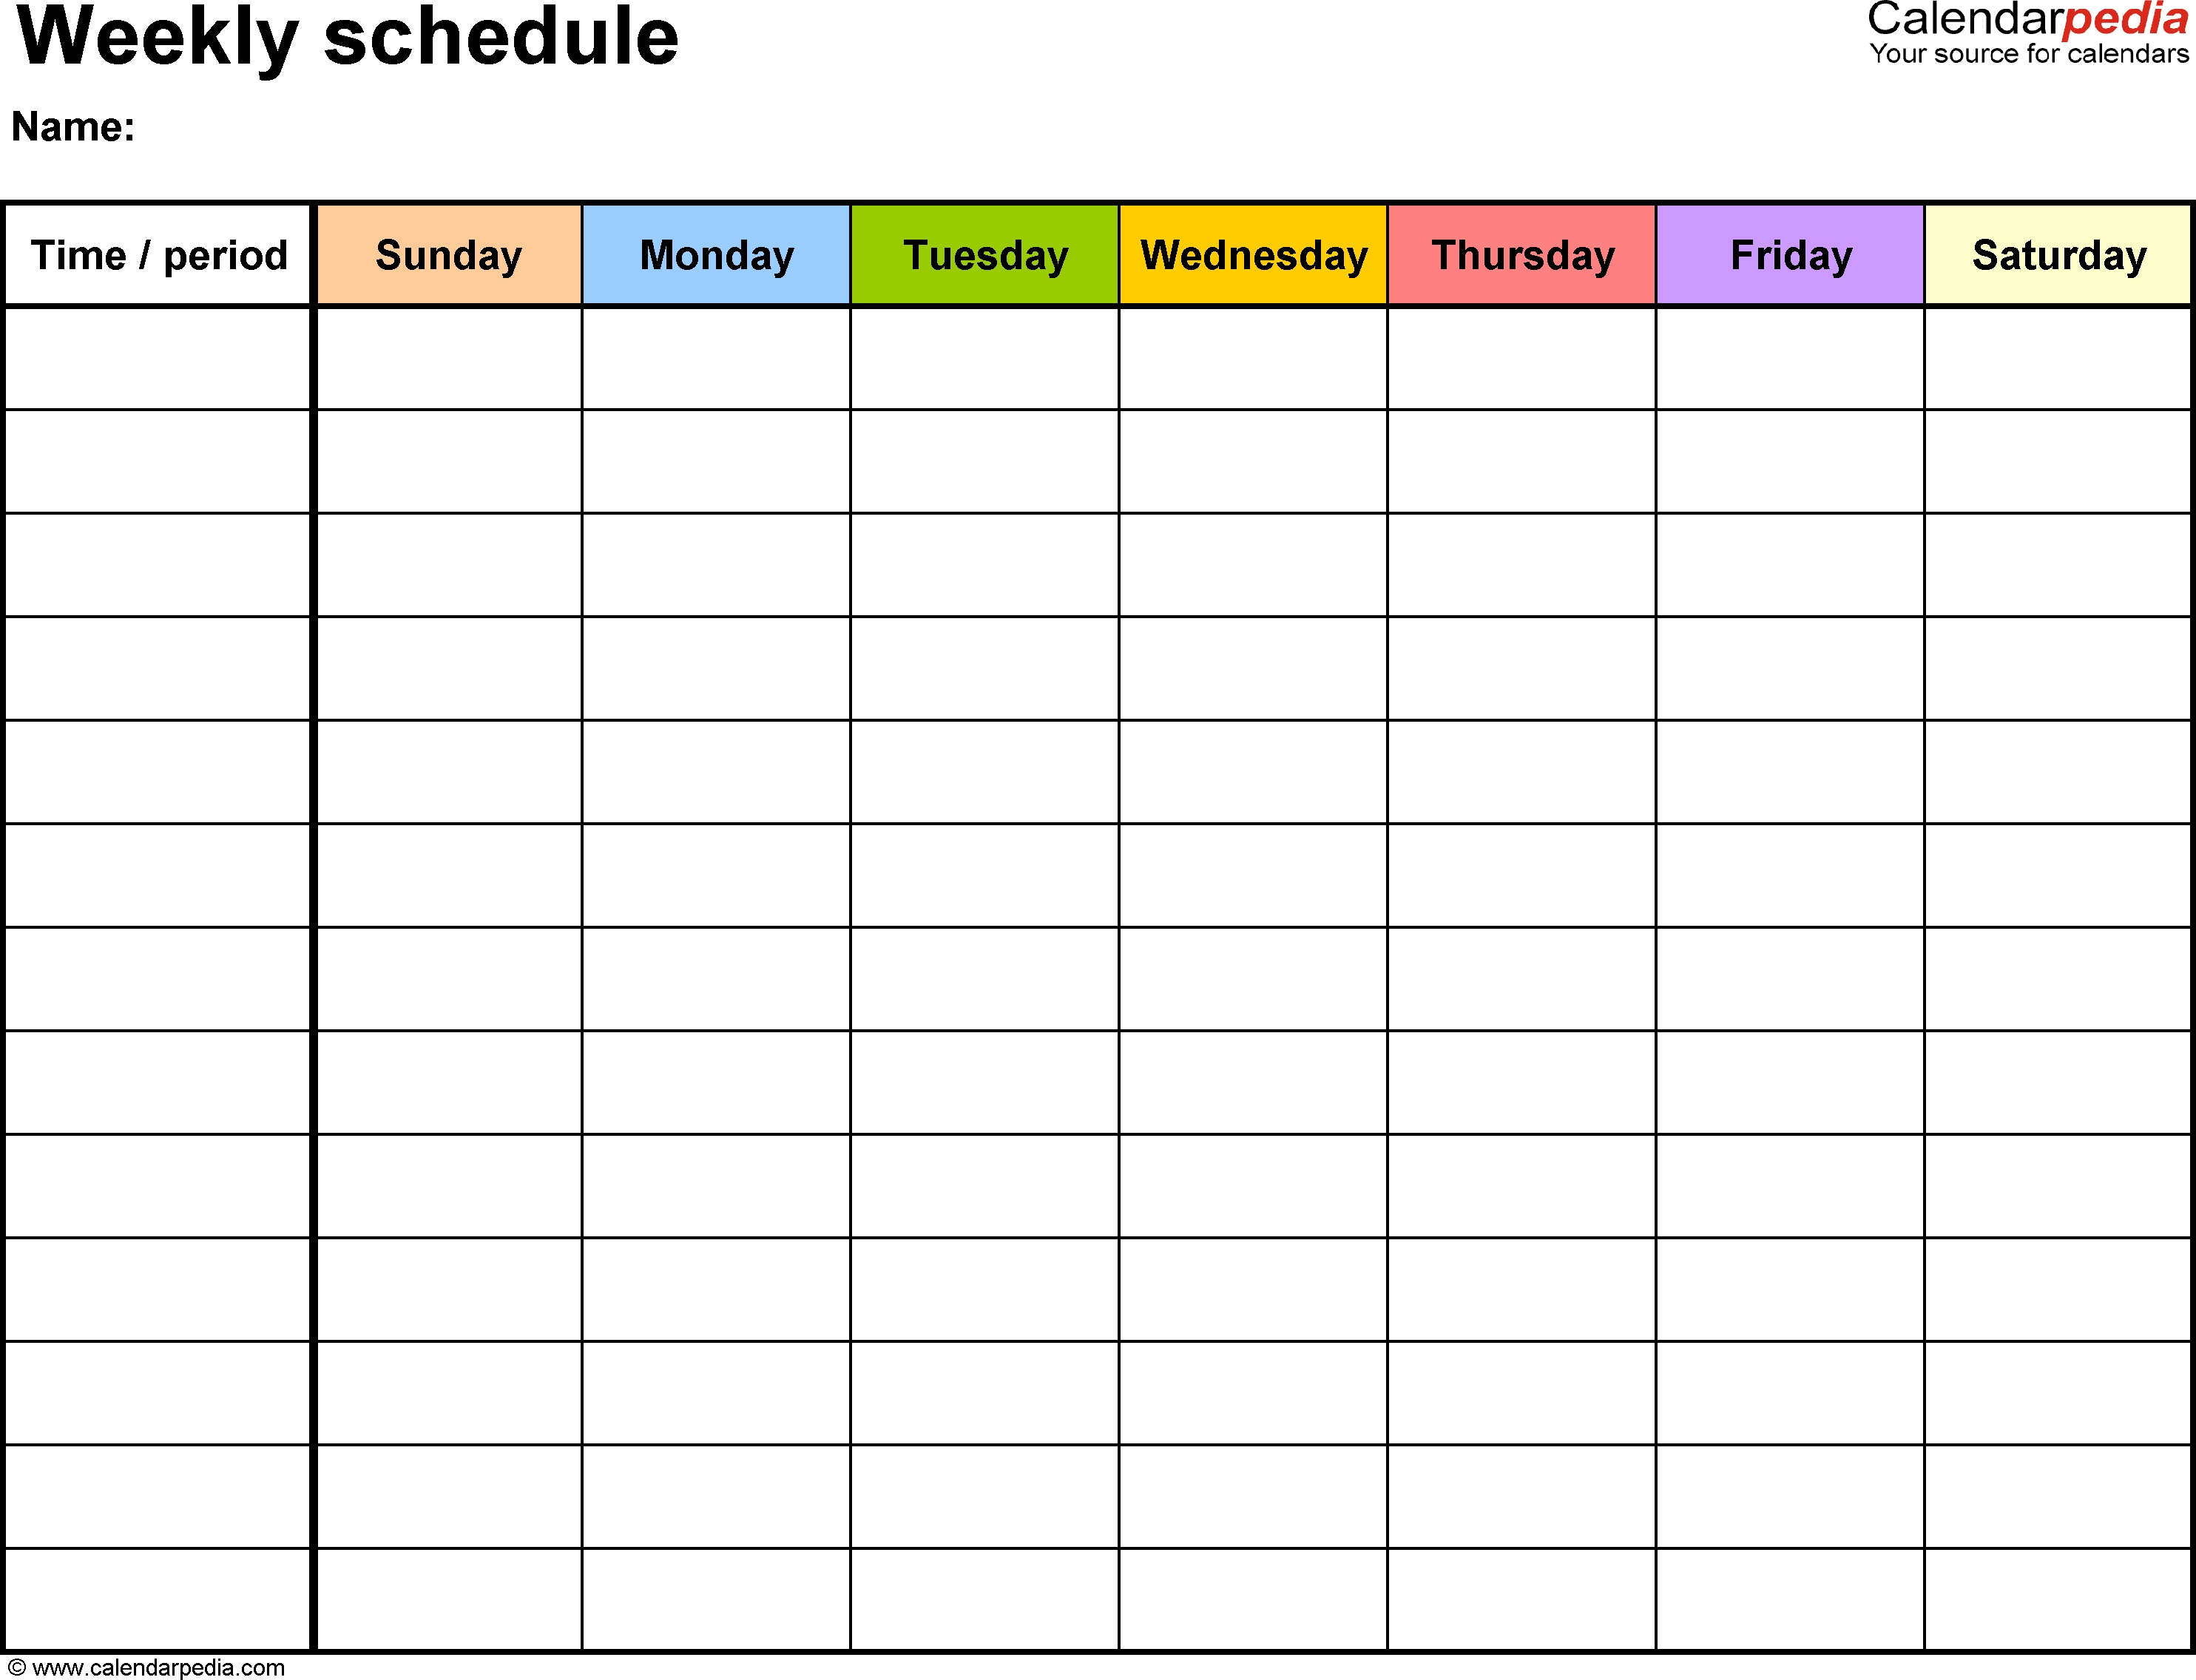 Free Weekly Schedule Templates For Excel - 18 Templates throughout One Week Calendar Template Exercise